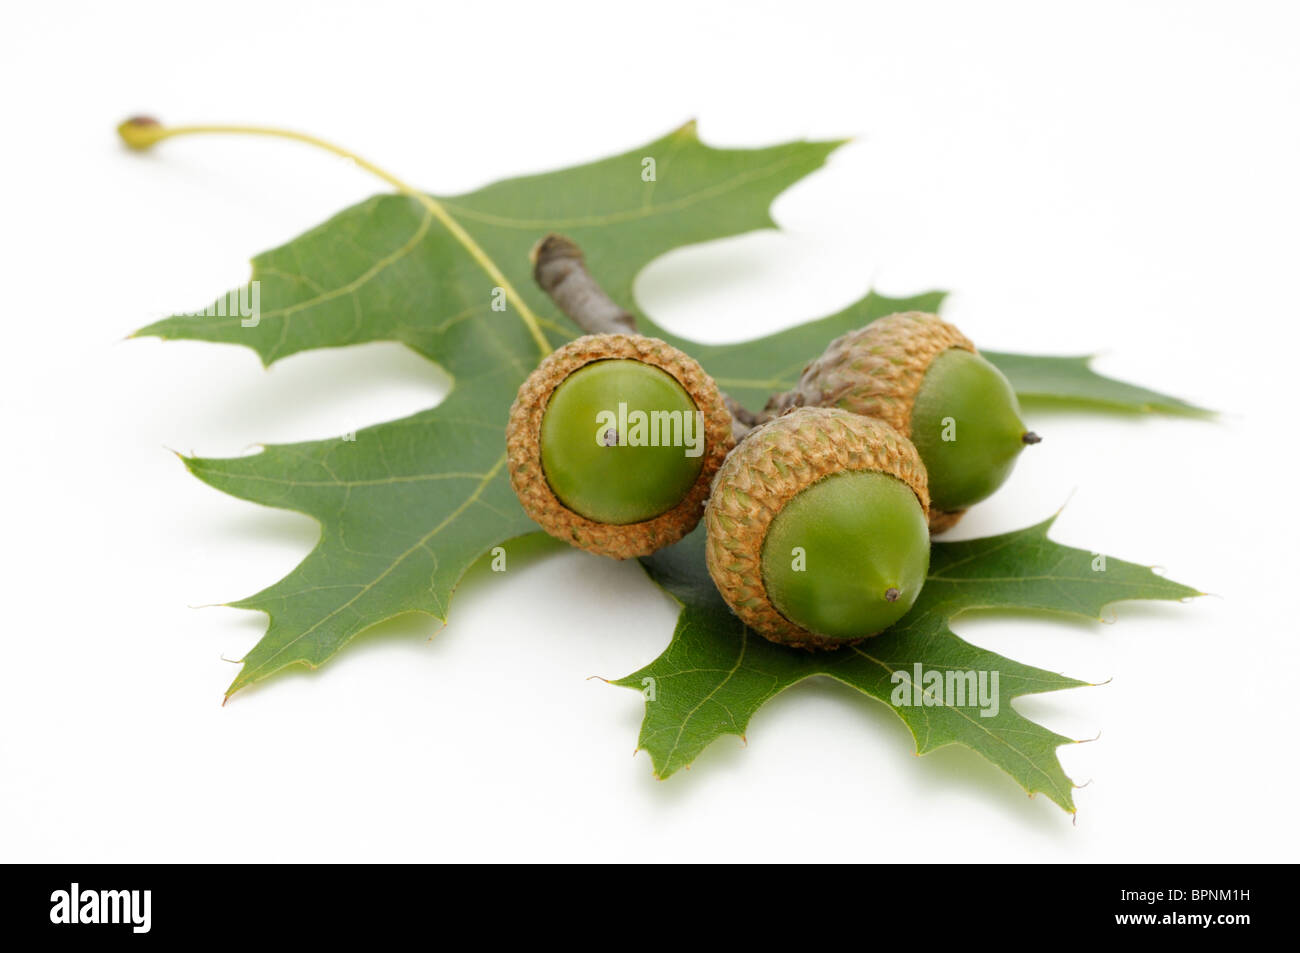 Three acorns and a leaf from northern red oak, Quercus rubra. - Stock Image